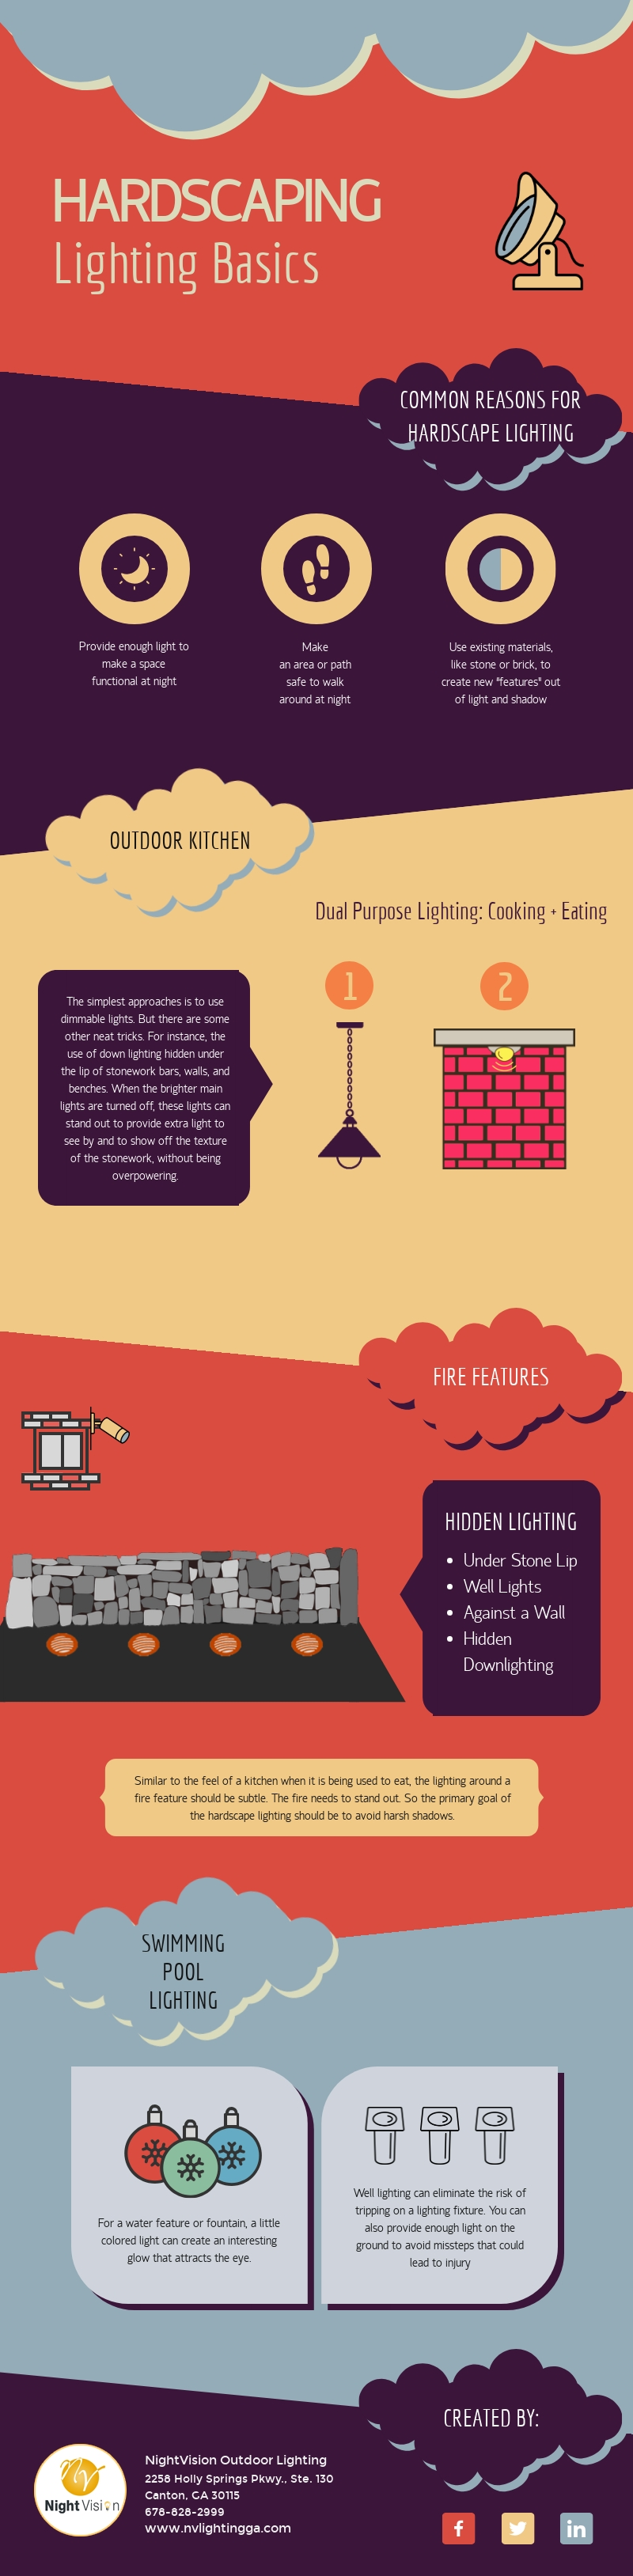 Hardscape Lighting Basics [infographic]